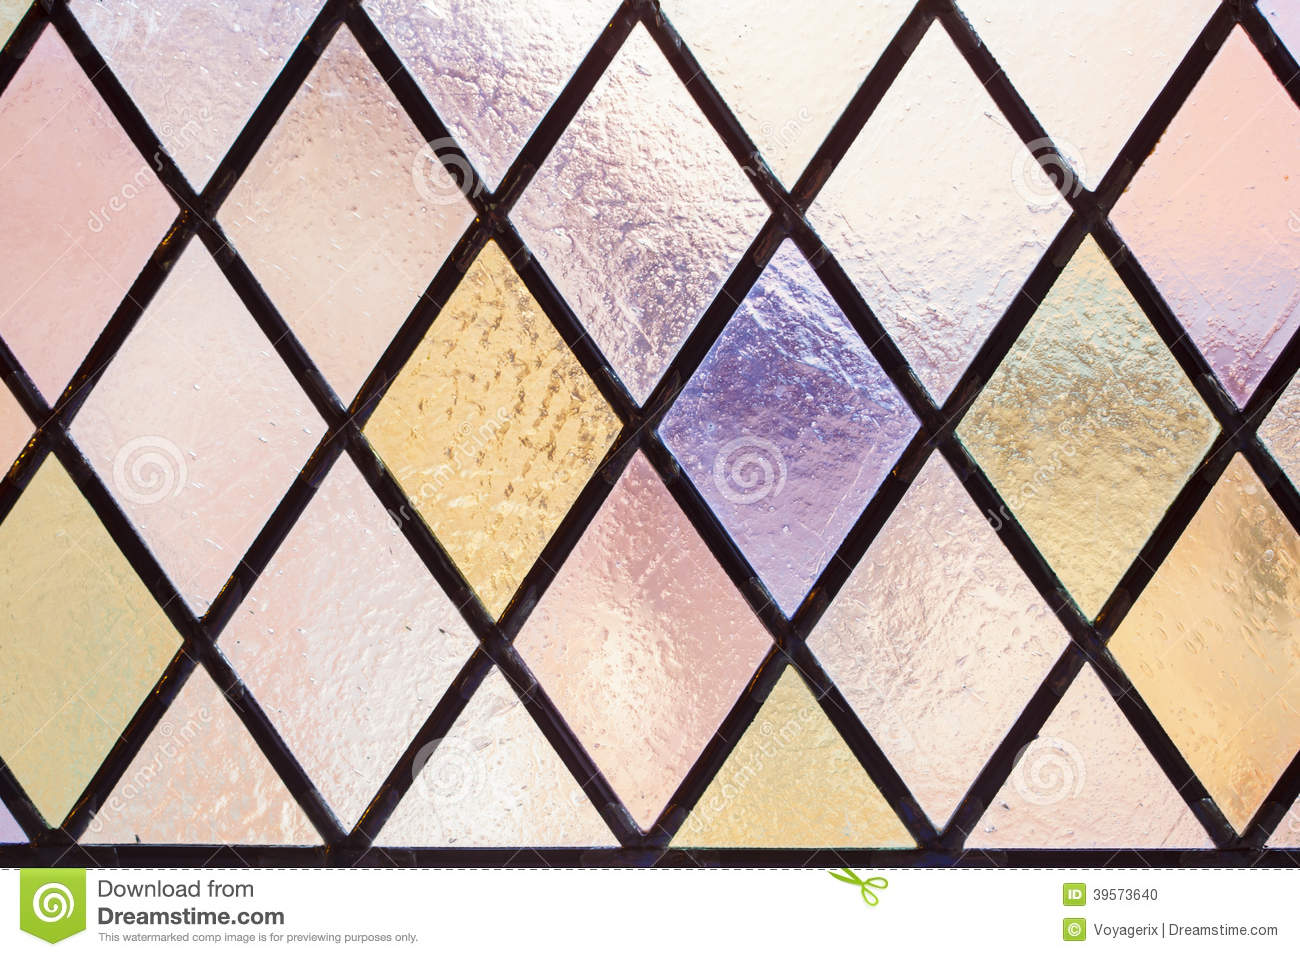 Blue glass window texture stained glass window texture - Stained Glass With Multi Colored Diamond Pattern As